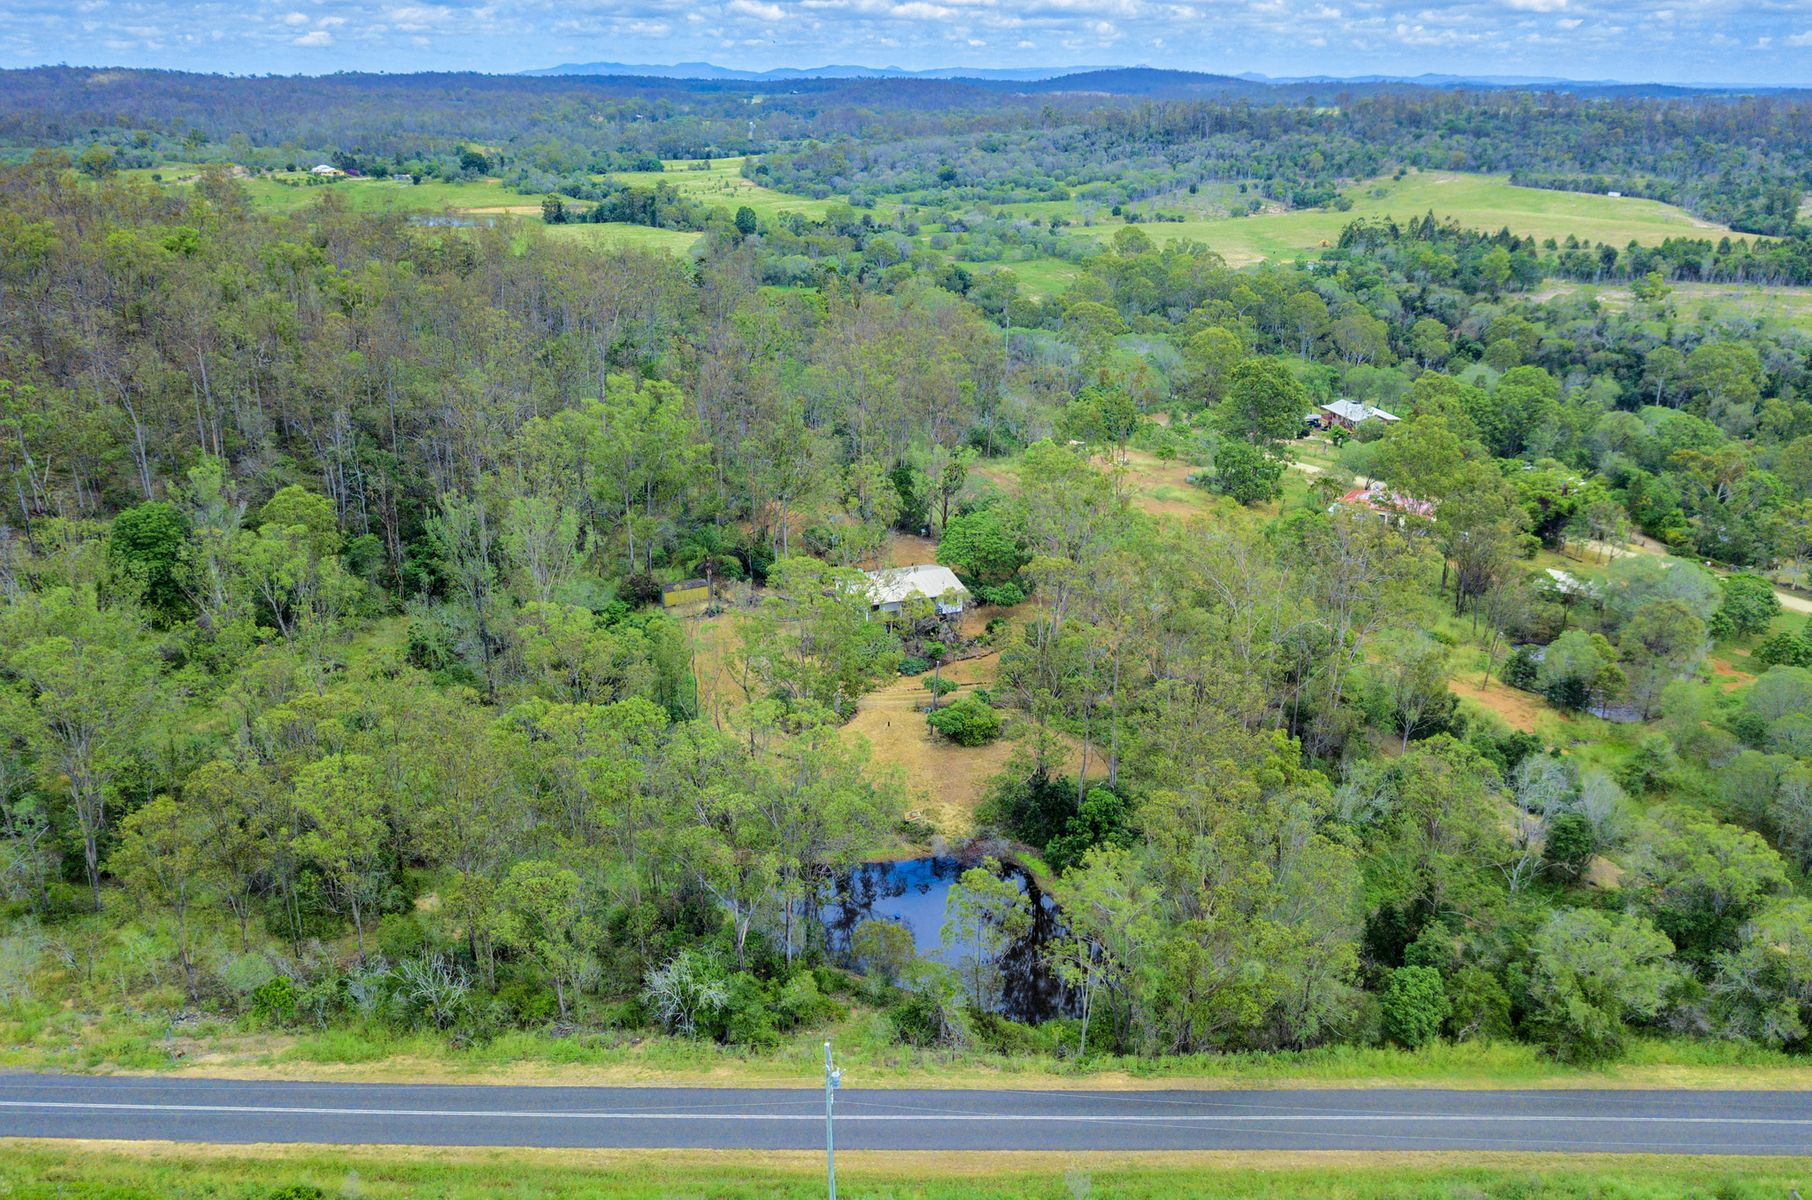 358 Wallaville - Goondoon Road, Bungadoo, QLD 4671